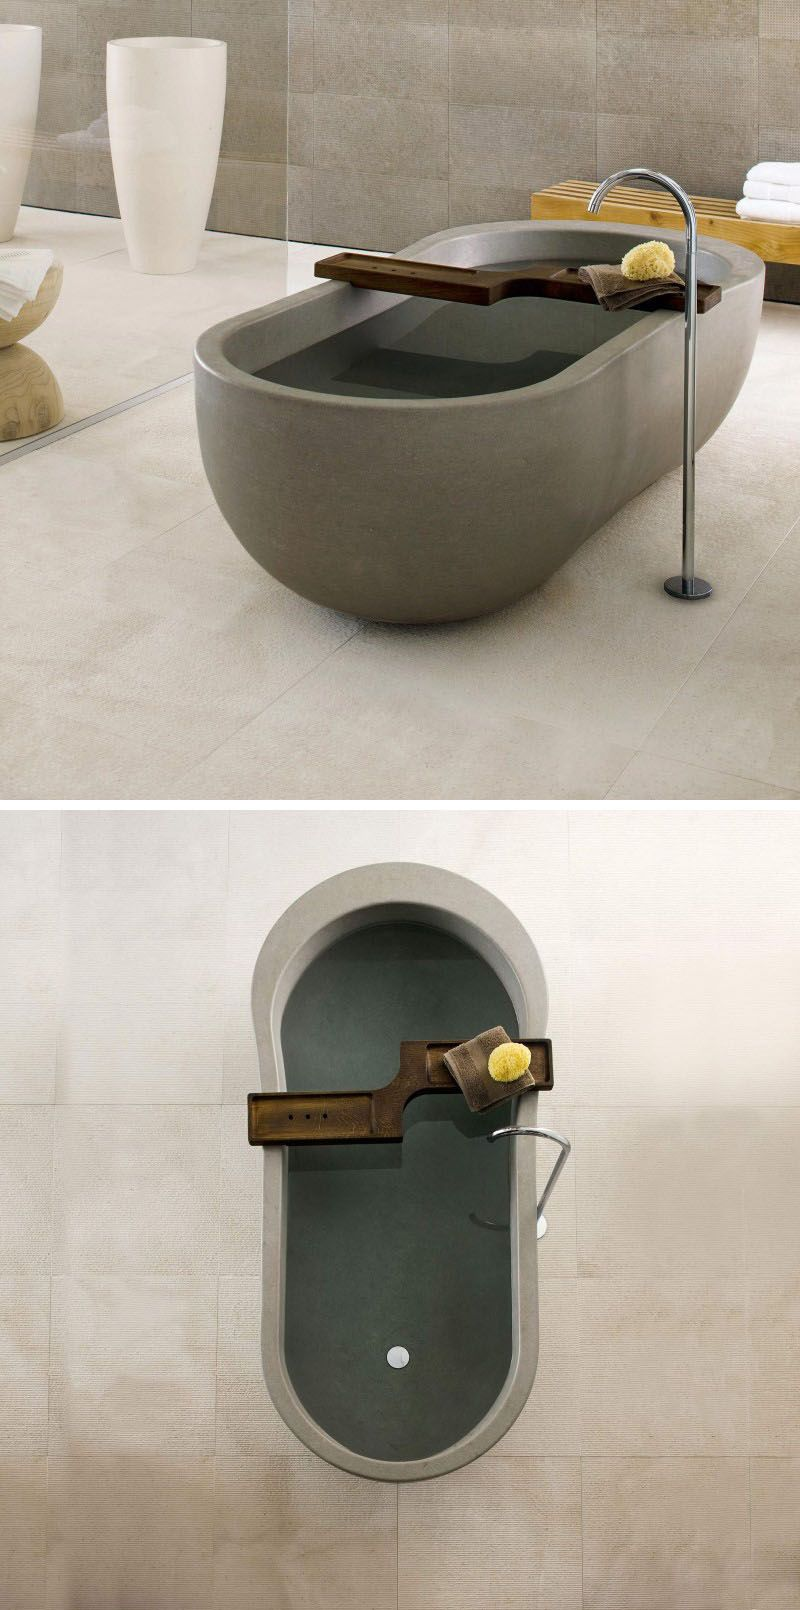 design with tub shower creating vanity spa faucet bathtubs soaking bathroom style japanese bathtub stone